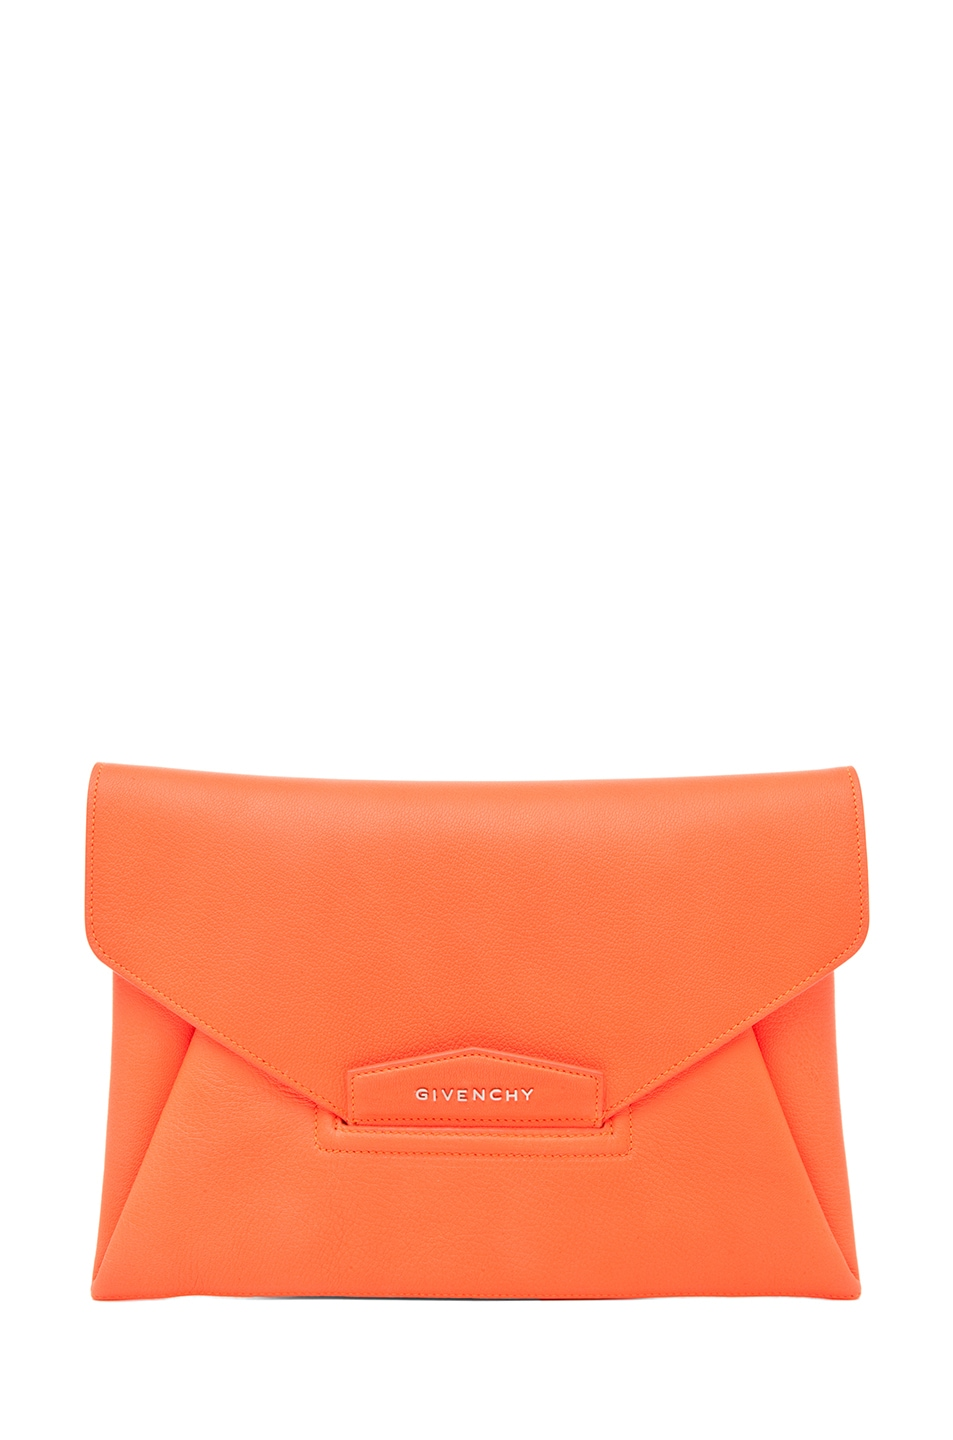 Image 1 of GIVENCHY Antigona Envelope Clutch in Bright Orange